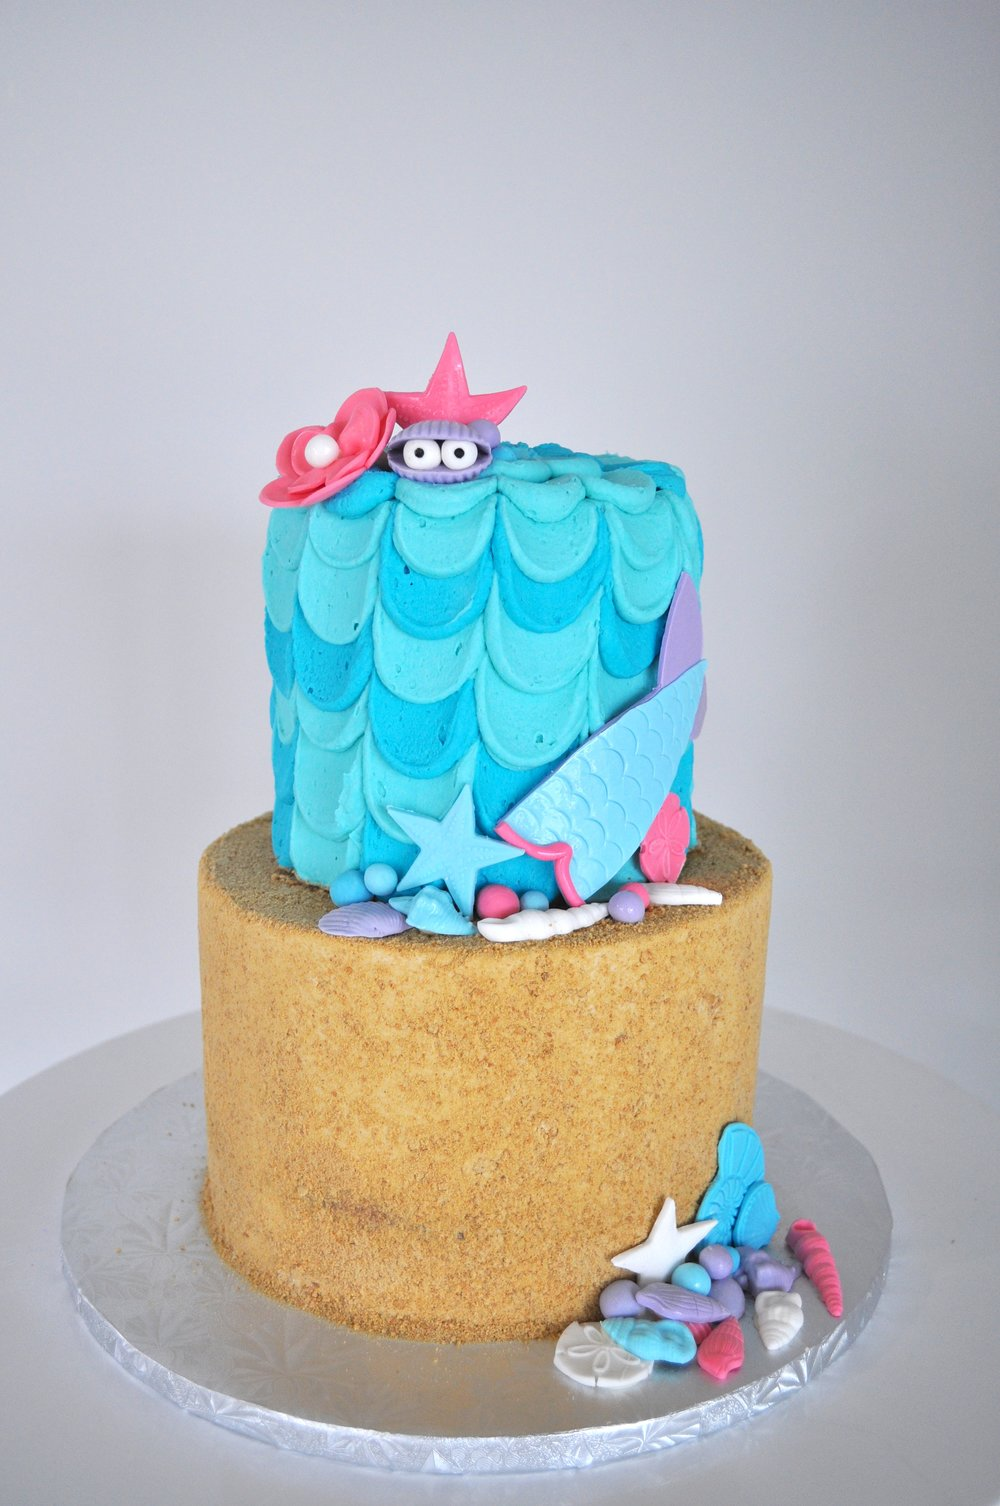 Mermaid Cake.jpg